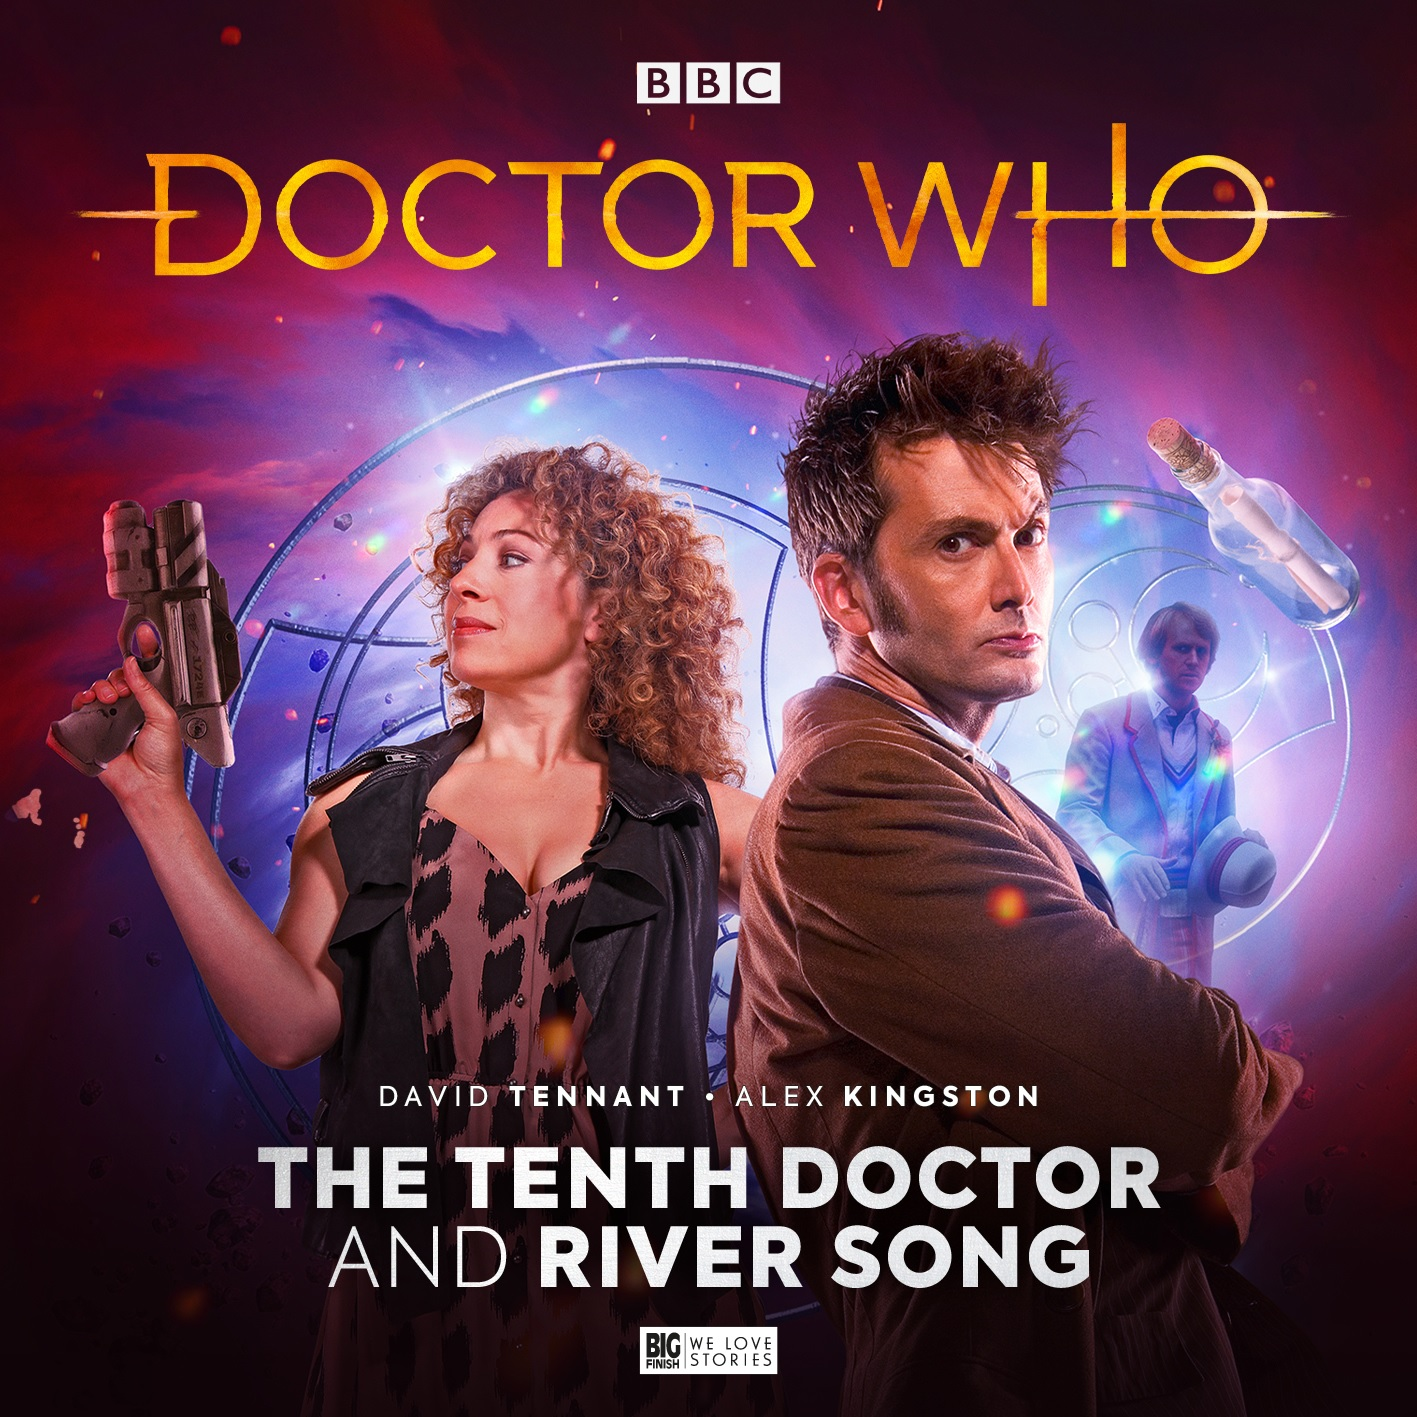 The Tenth Doctor and River Song Reunite for New Audio Boxset from Big Finish!